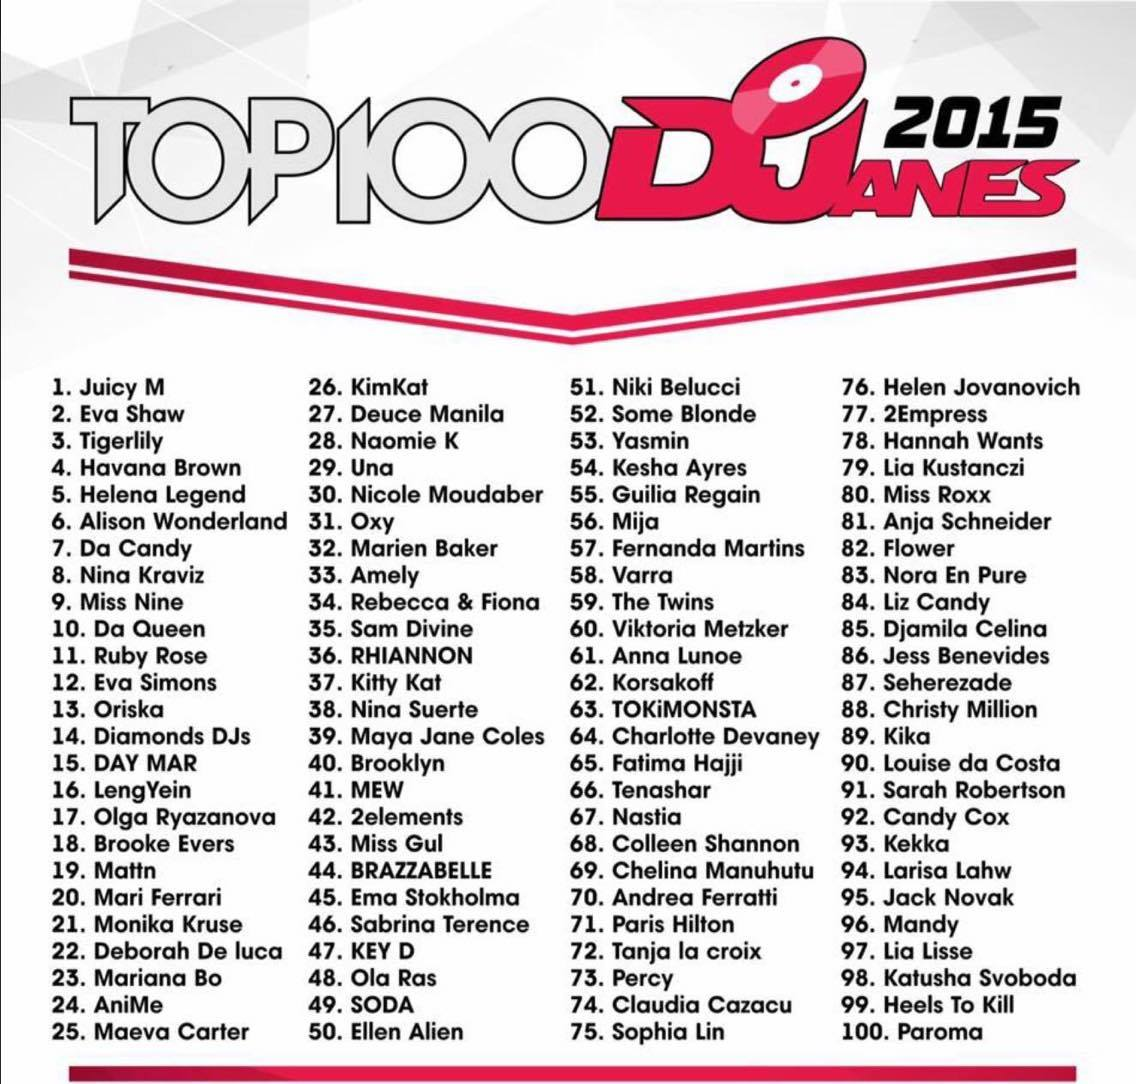 female-top-100-djs